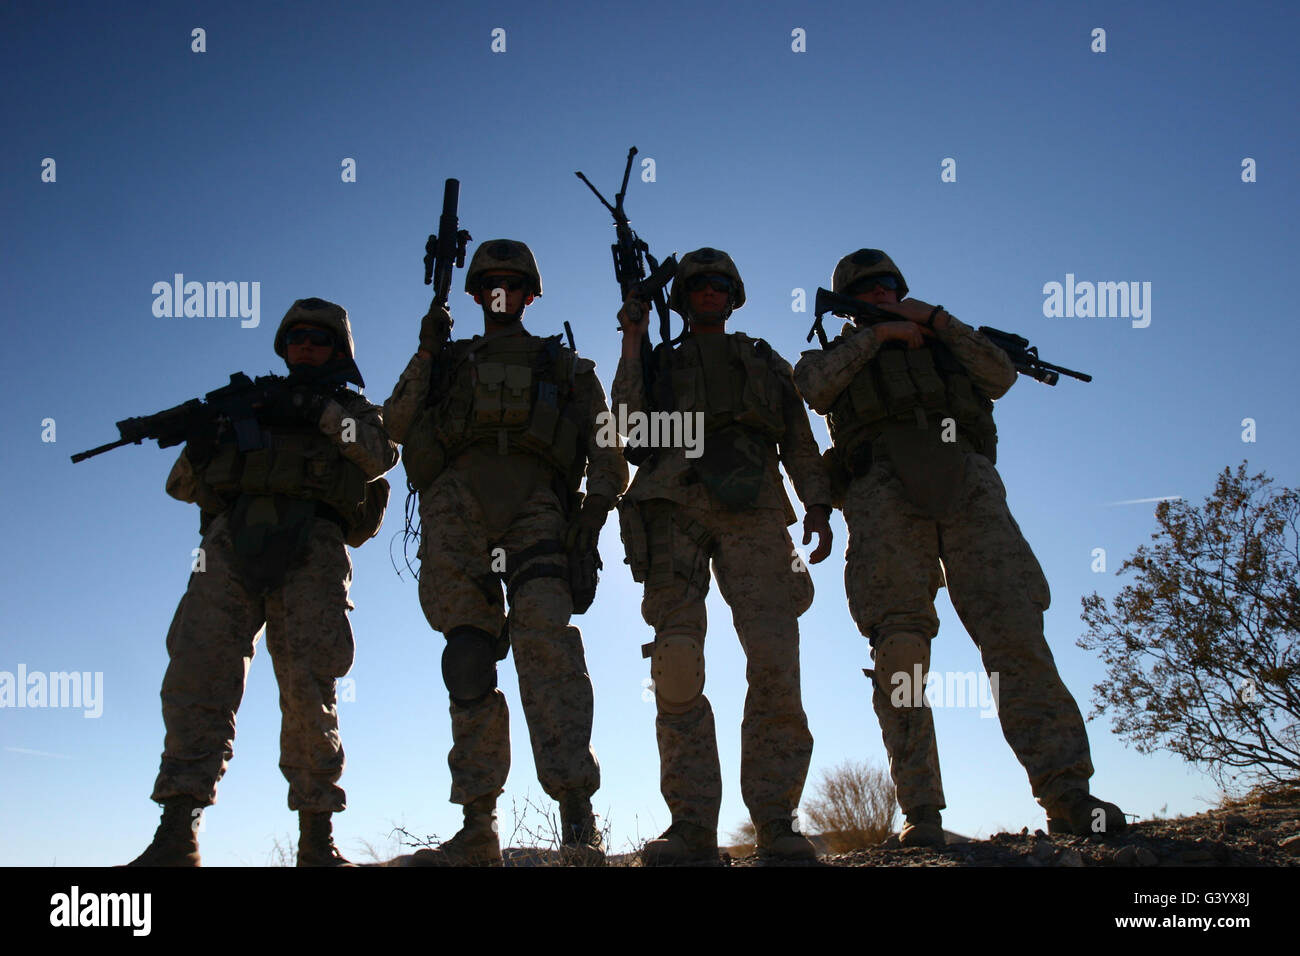 Marines landed at the Combat Center to conduct Mojave Viper pre-deployment training. - Stock Image